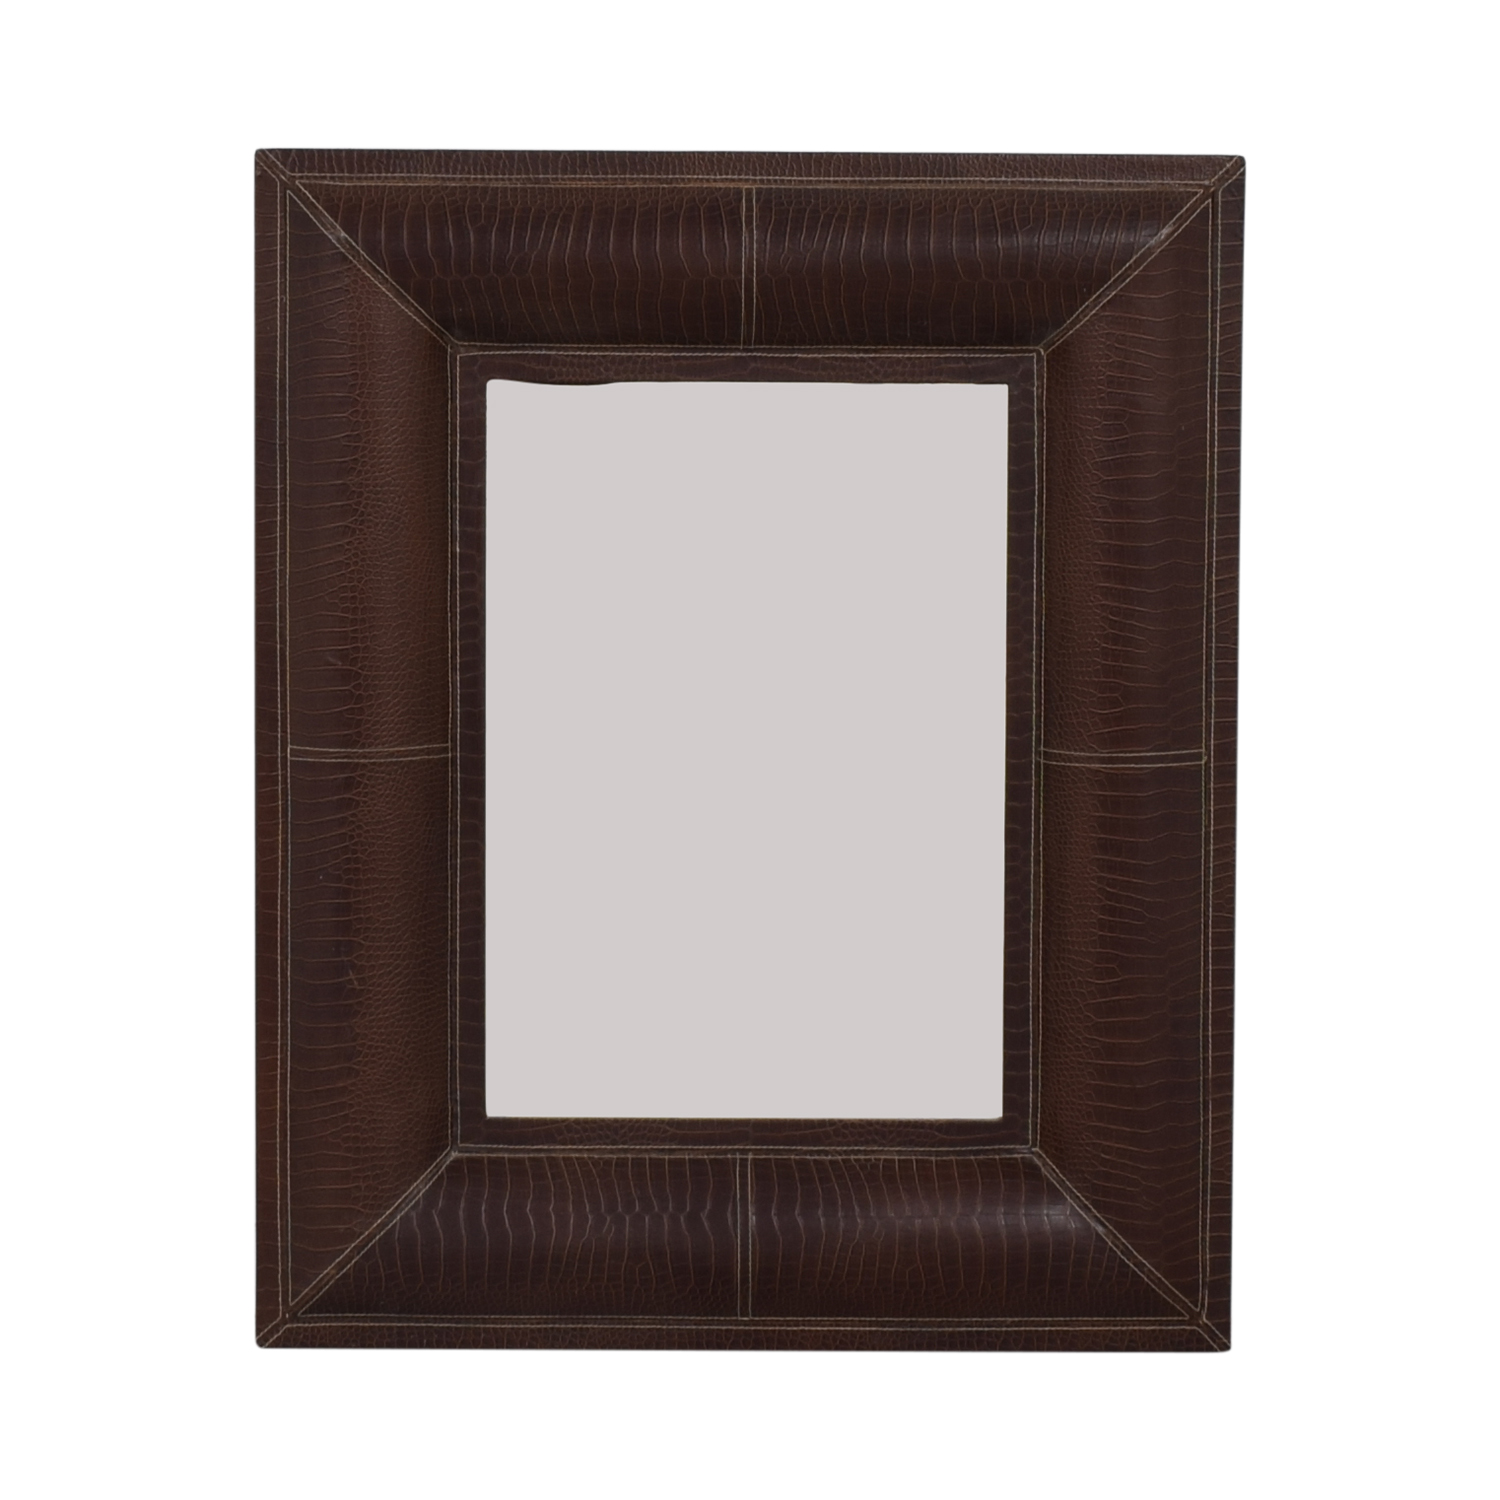 Mirror with Decorative Frame used